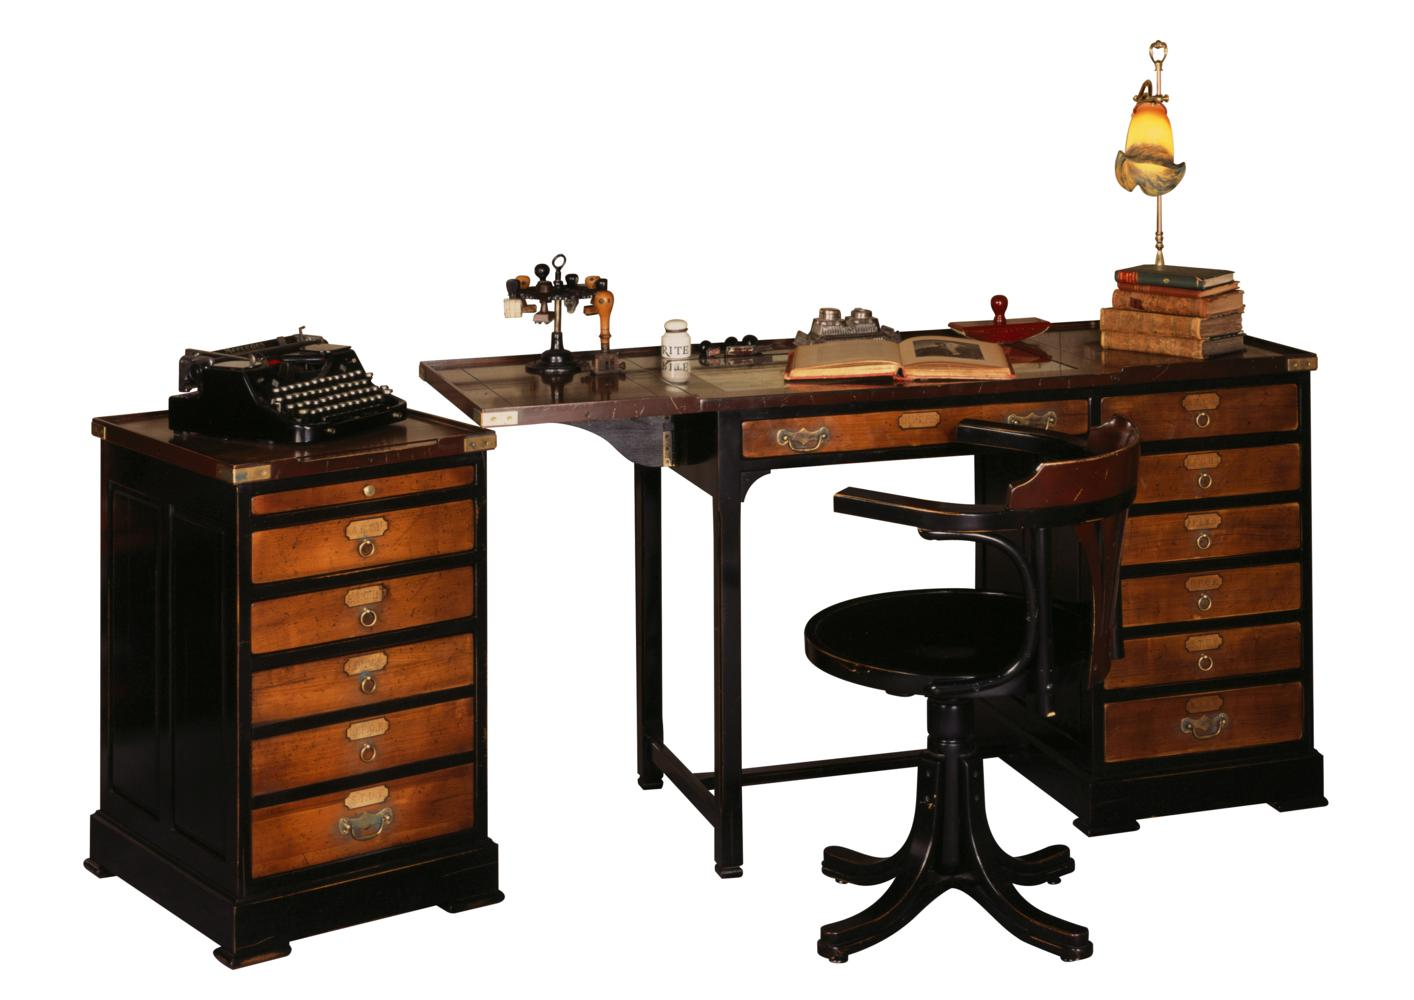 acheter votre bureau de joailler chez simeuble. Black Bedroom Furniture Sets. Home Design Ideas